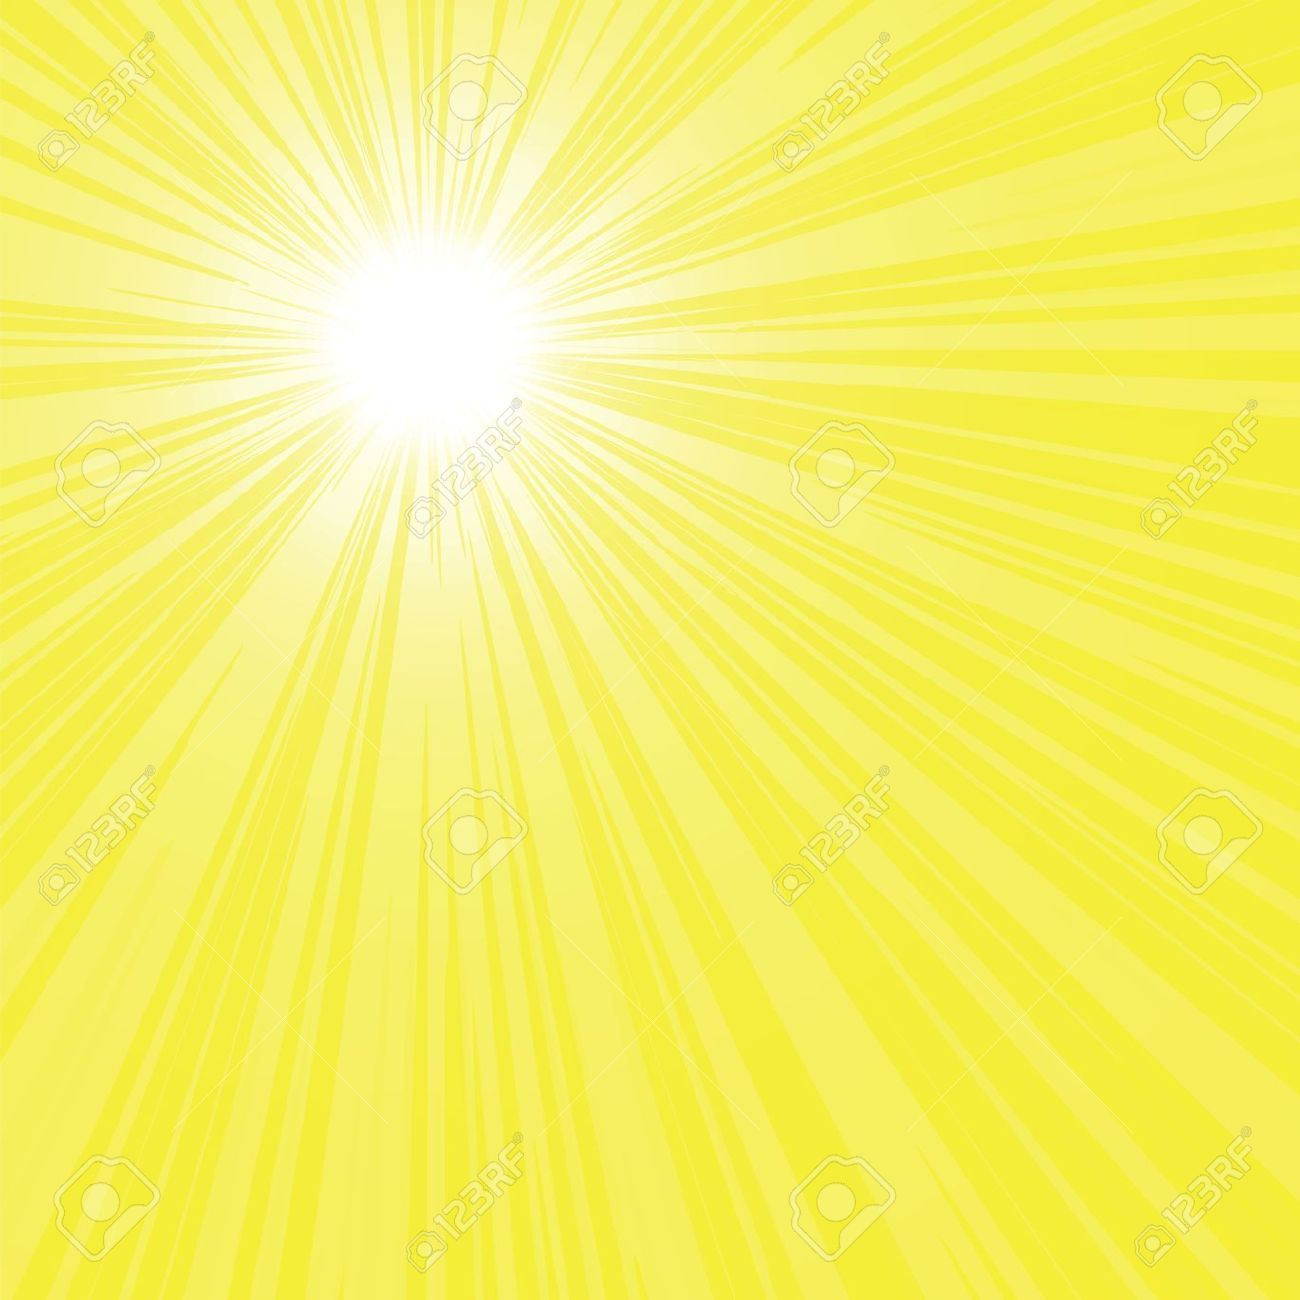 Daisy Solar String Lights: Nurturing Yellow Sunlight Fills The Empress Card.